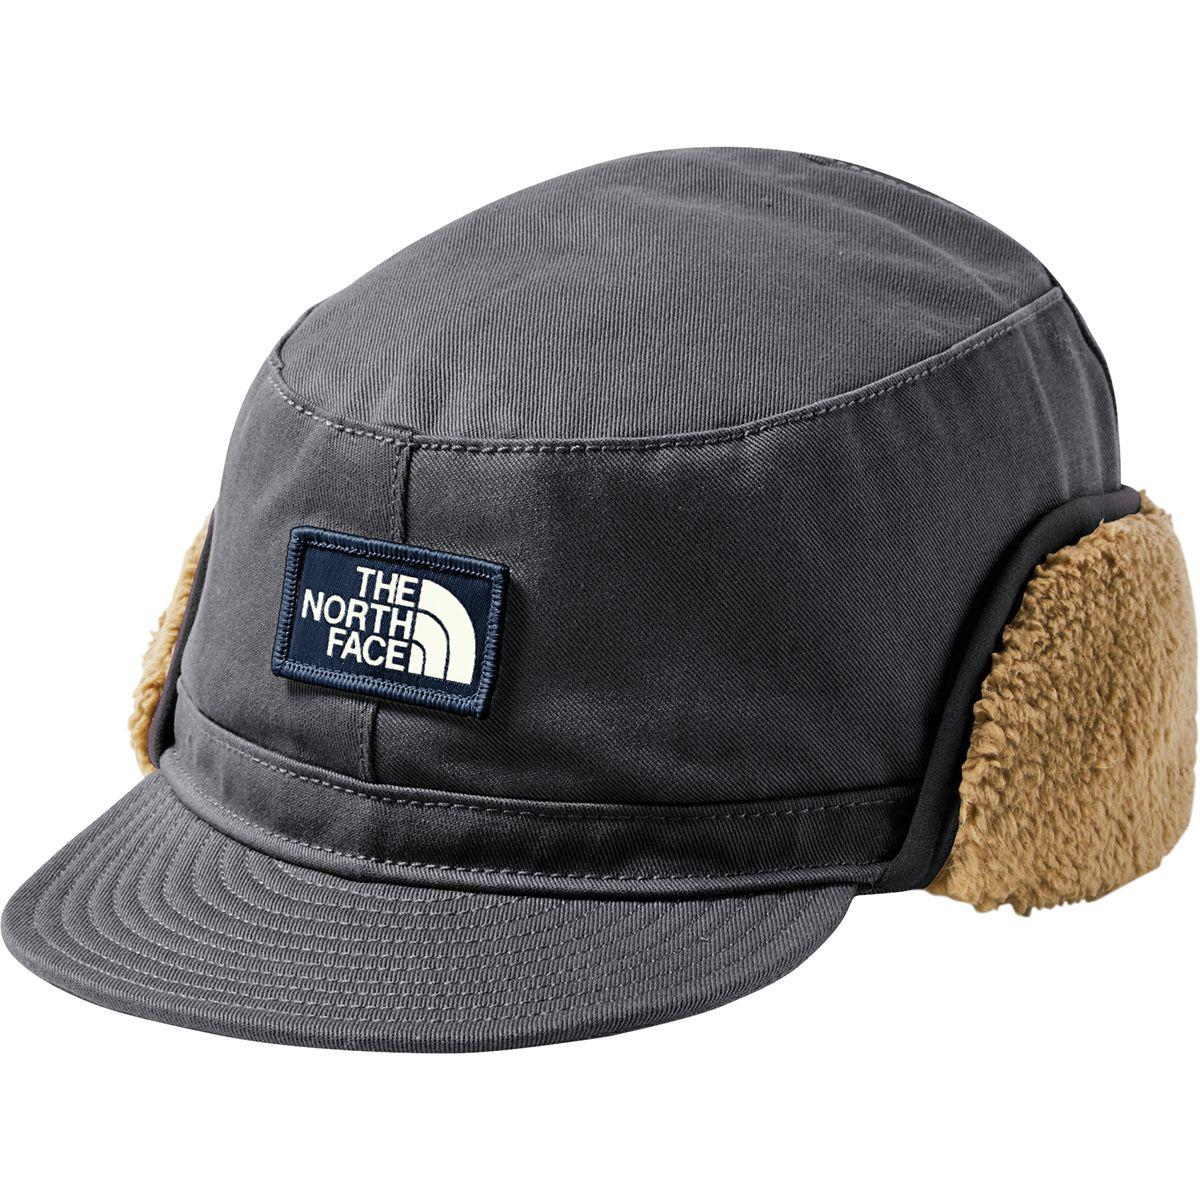 0f8a5f0fe0a Lyst - The North Face Campshire Earflap Cap in Black for Men